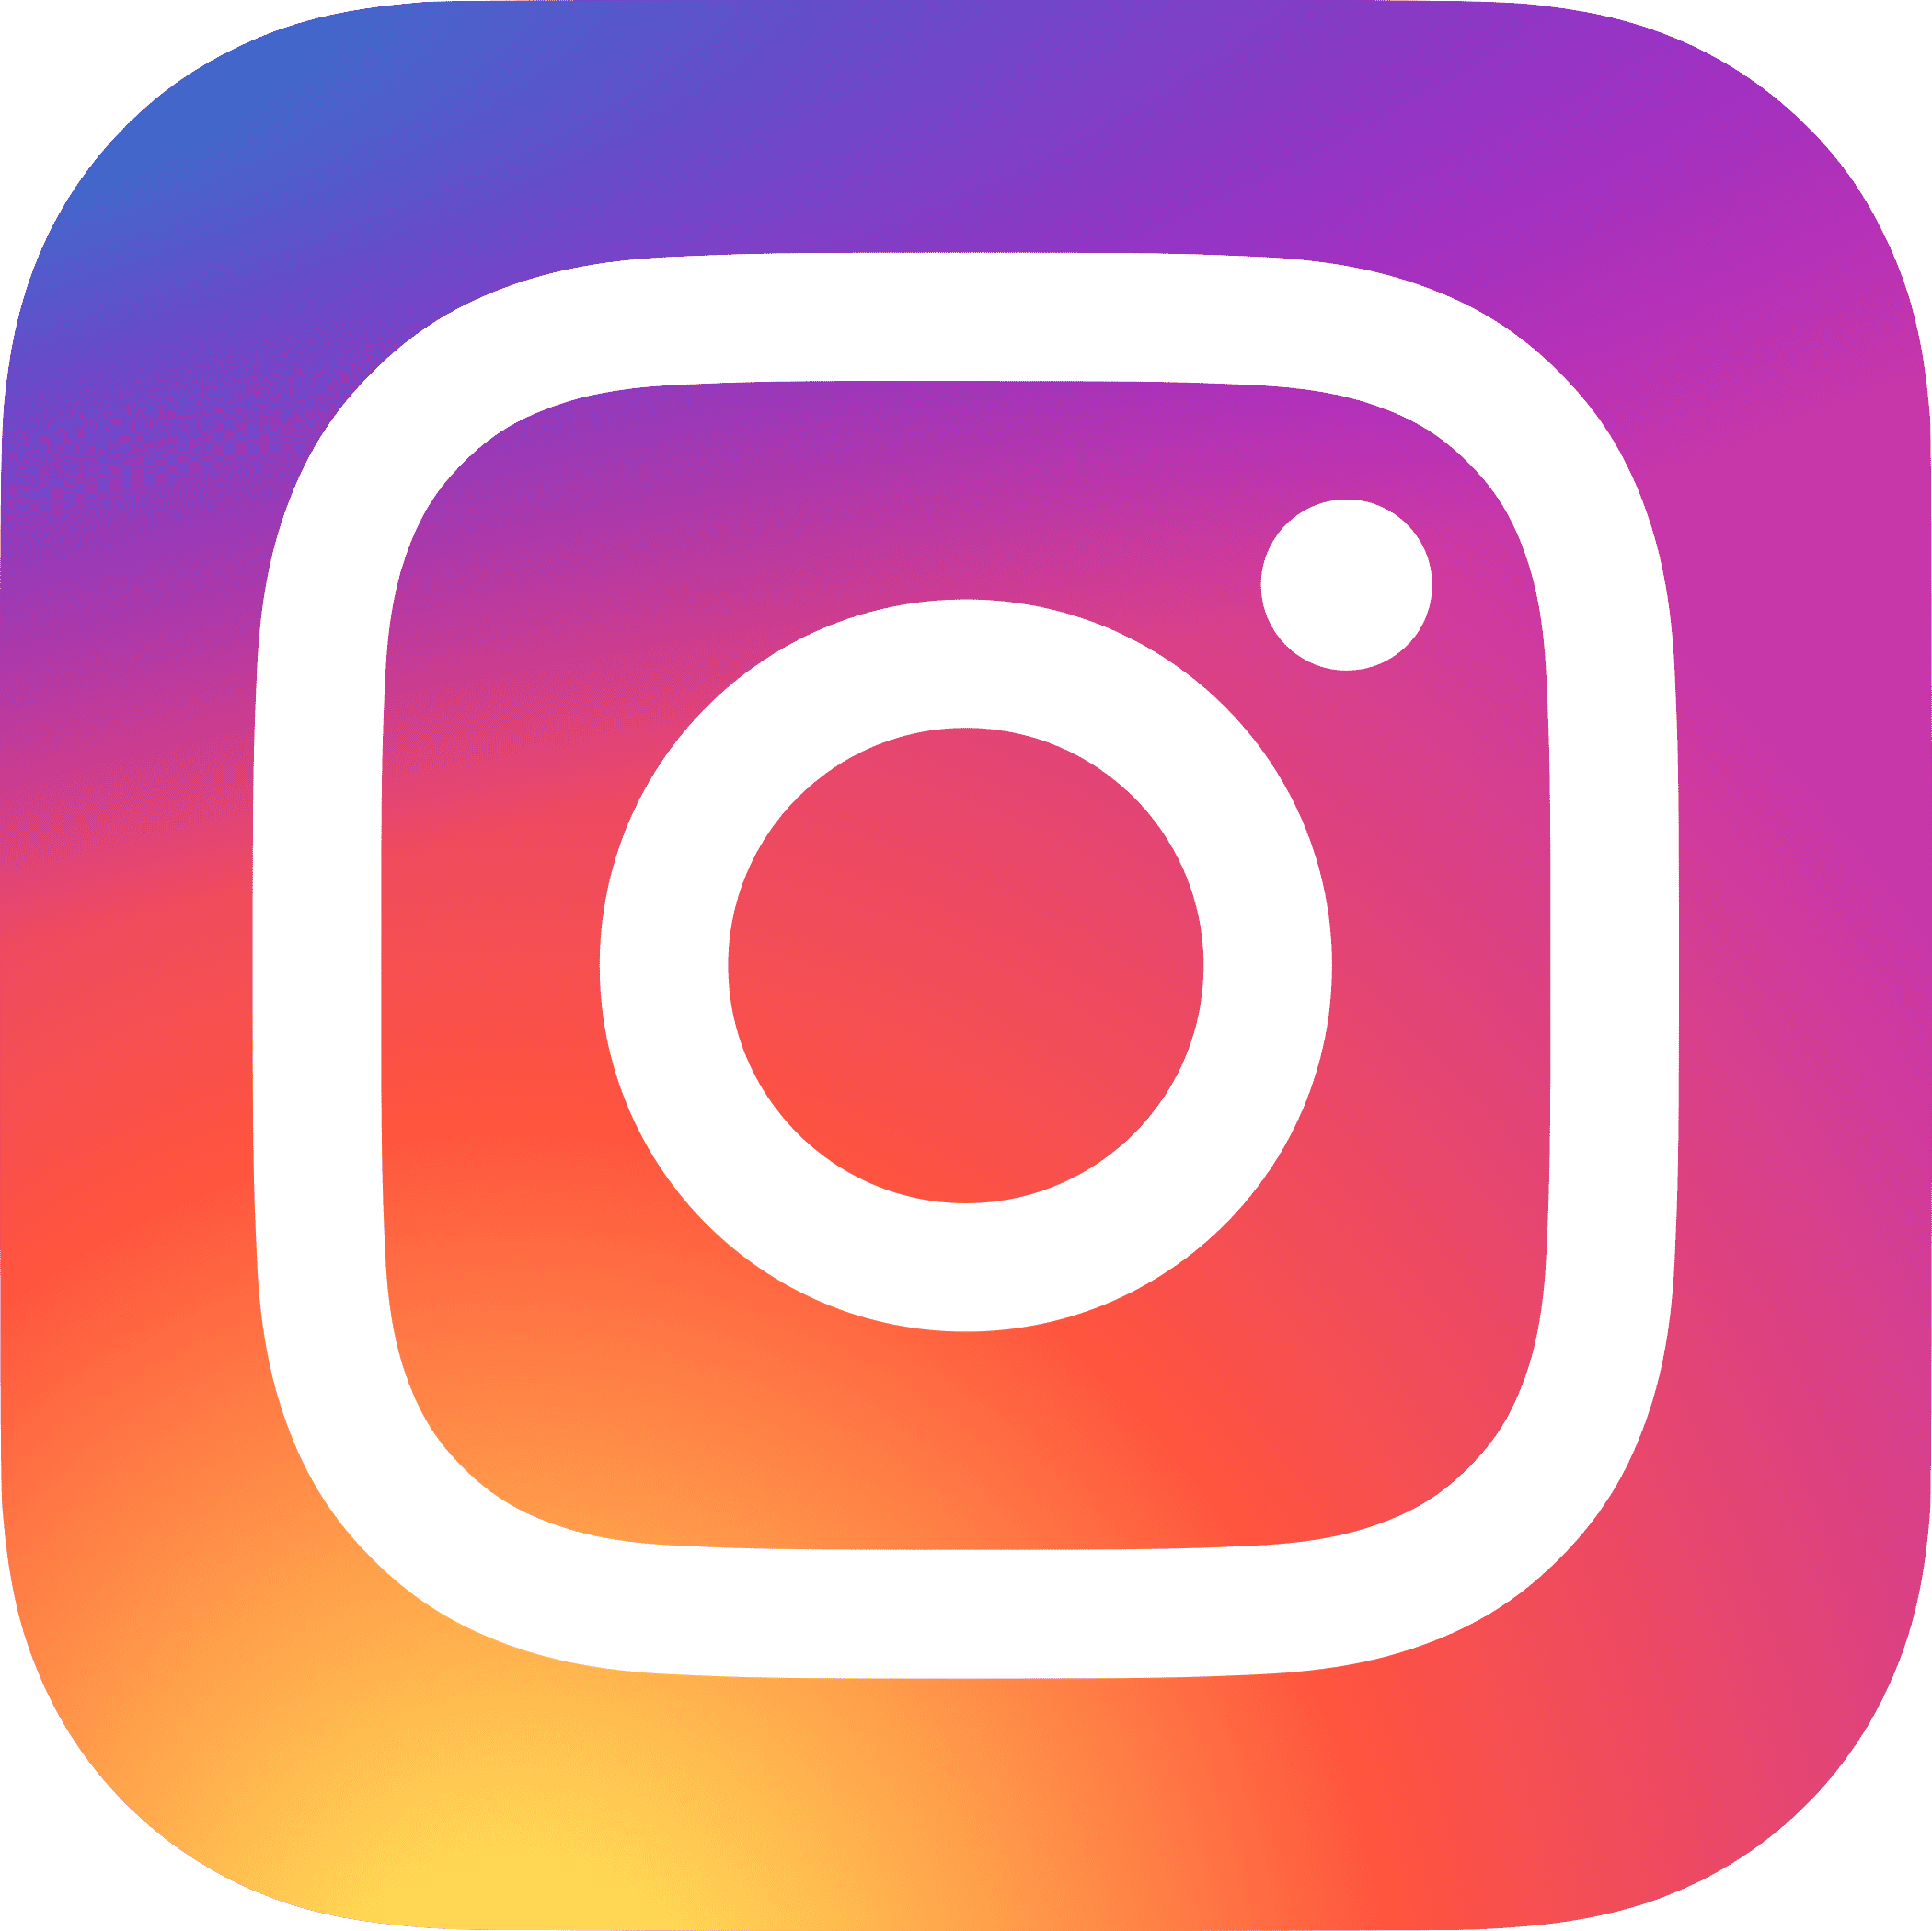 instagram maiores especialistas em marketing digital